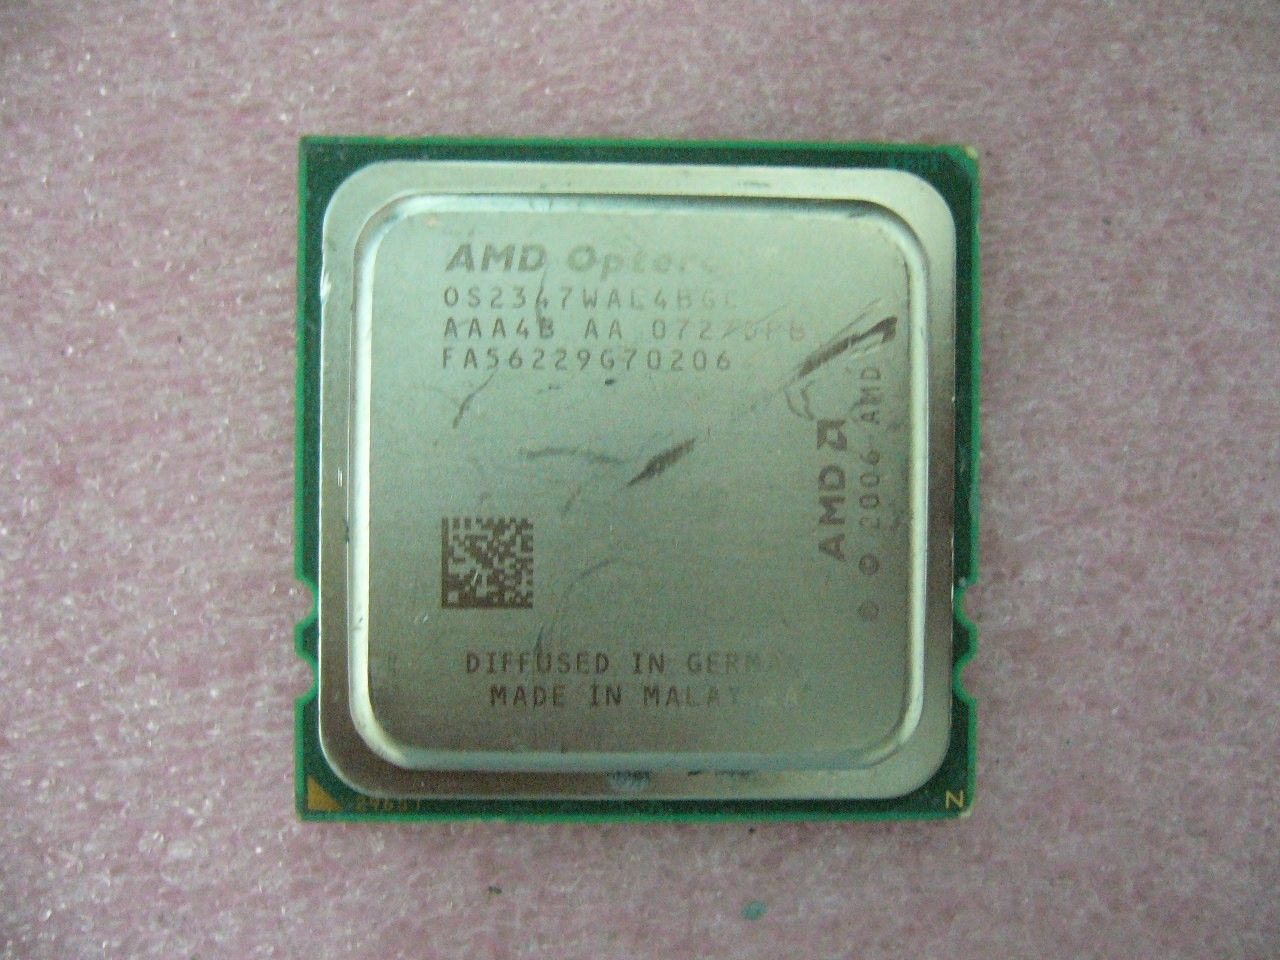 QTY 1x AMD Opteron 2347 1.9 GHz Quad-Core (OS2347WAL4BGC) CPU Socket F 1207